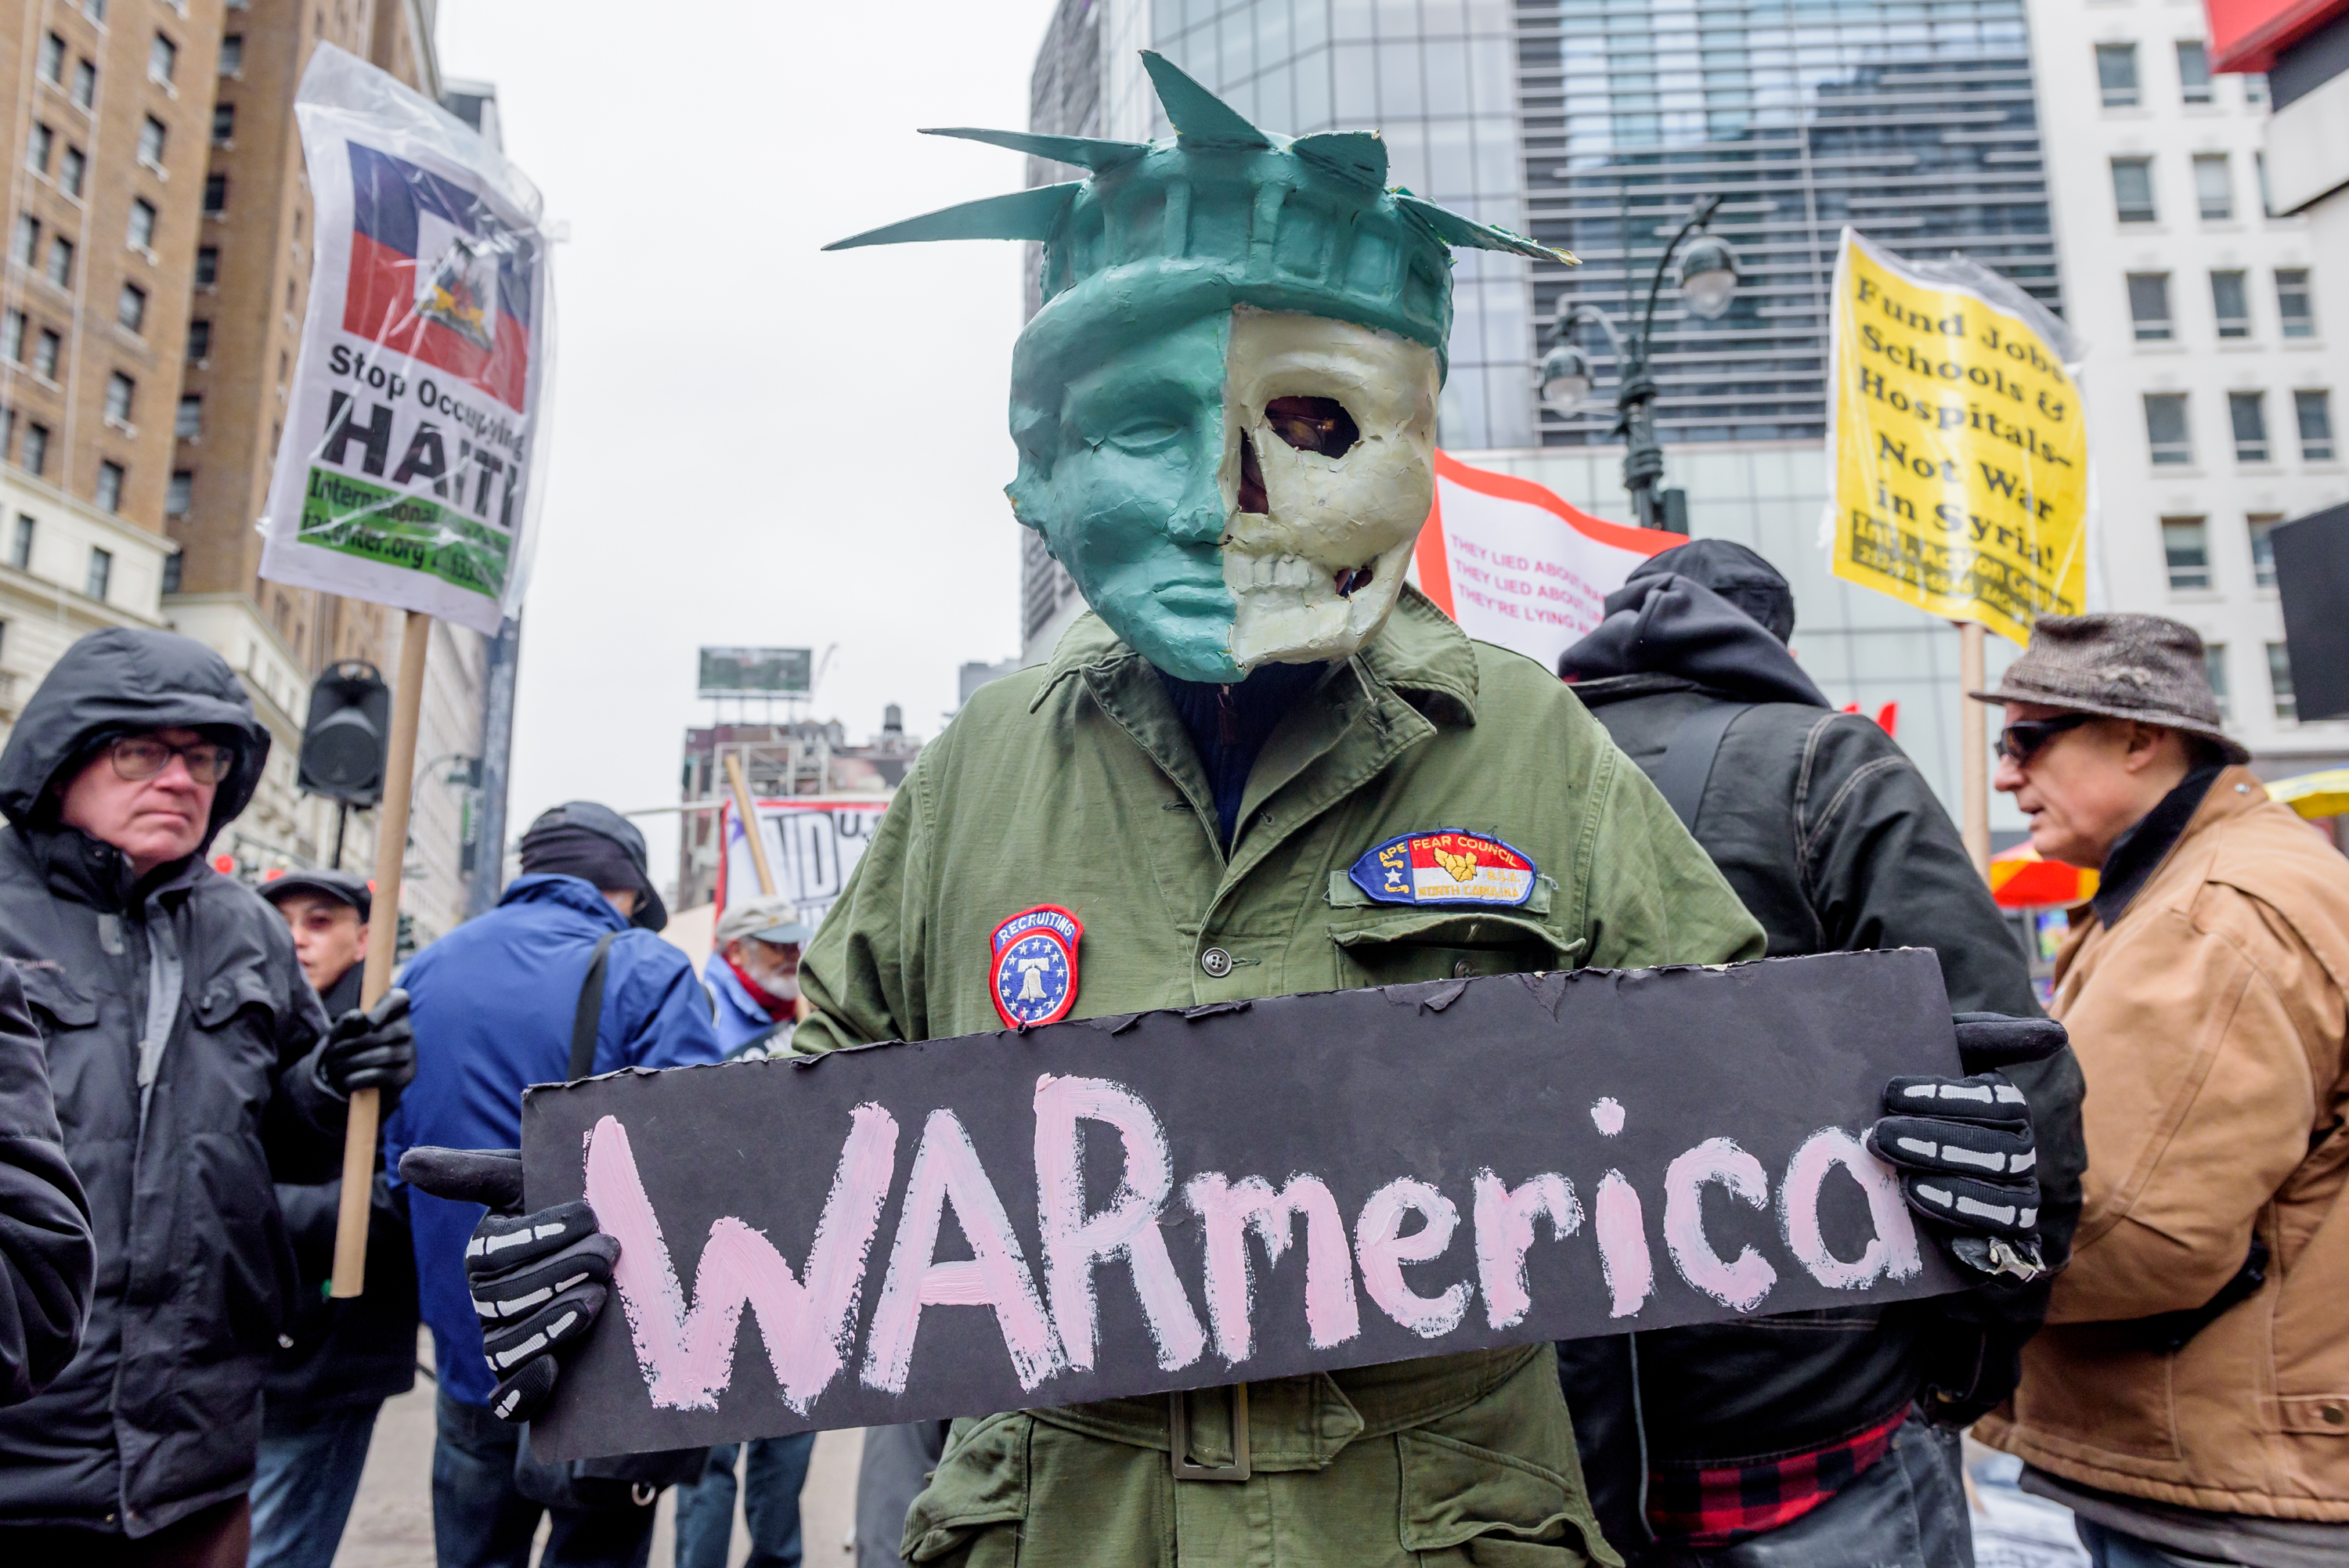 Fighting Climate Change Means Ending War